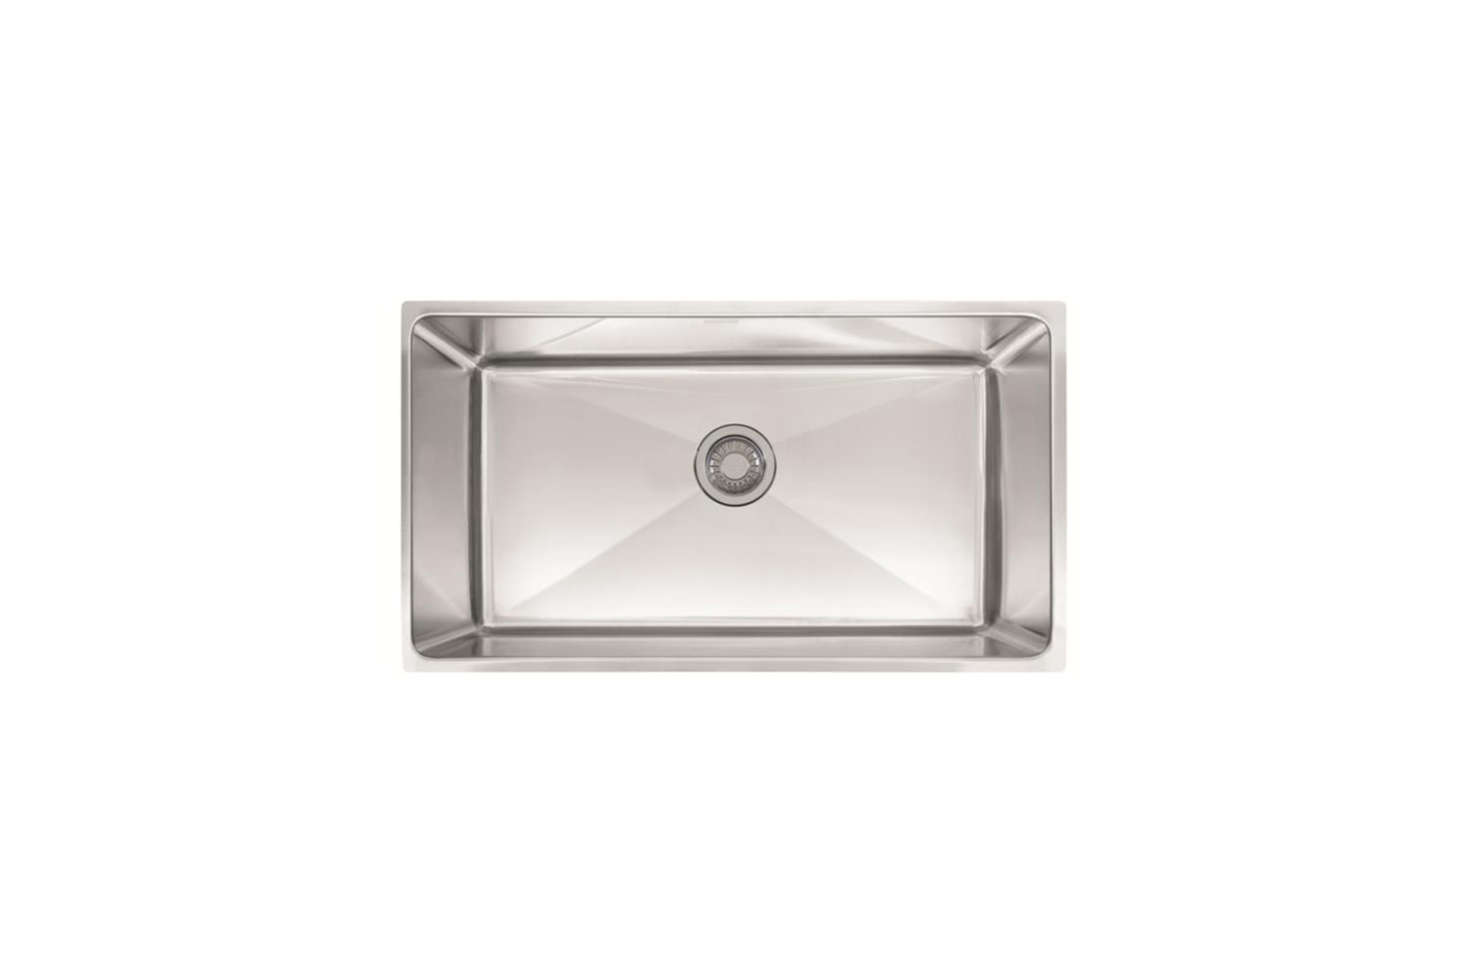 For a deep-set stainless steel sink, the Franke Professional Series 3